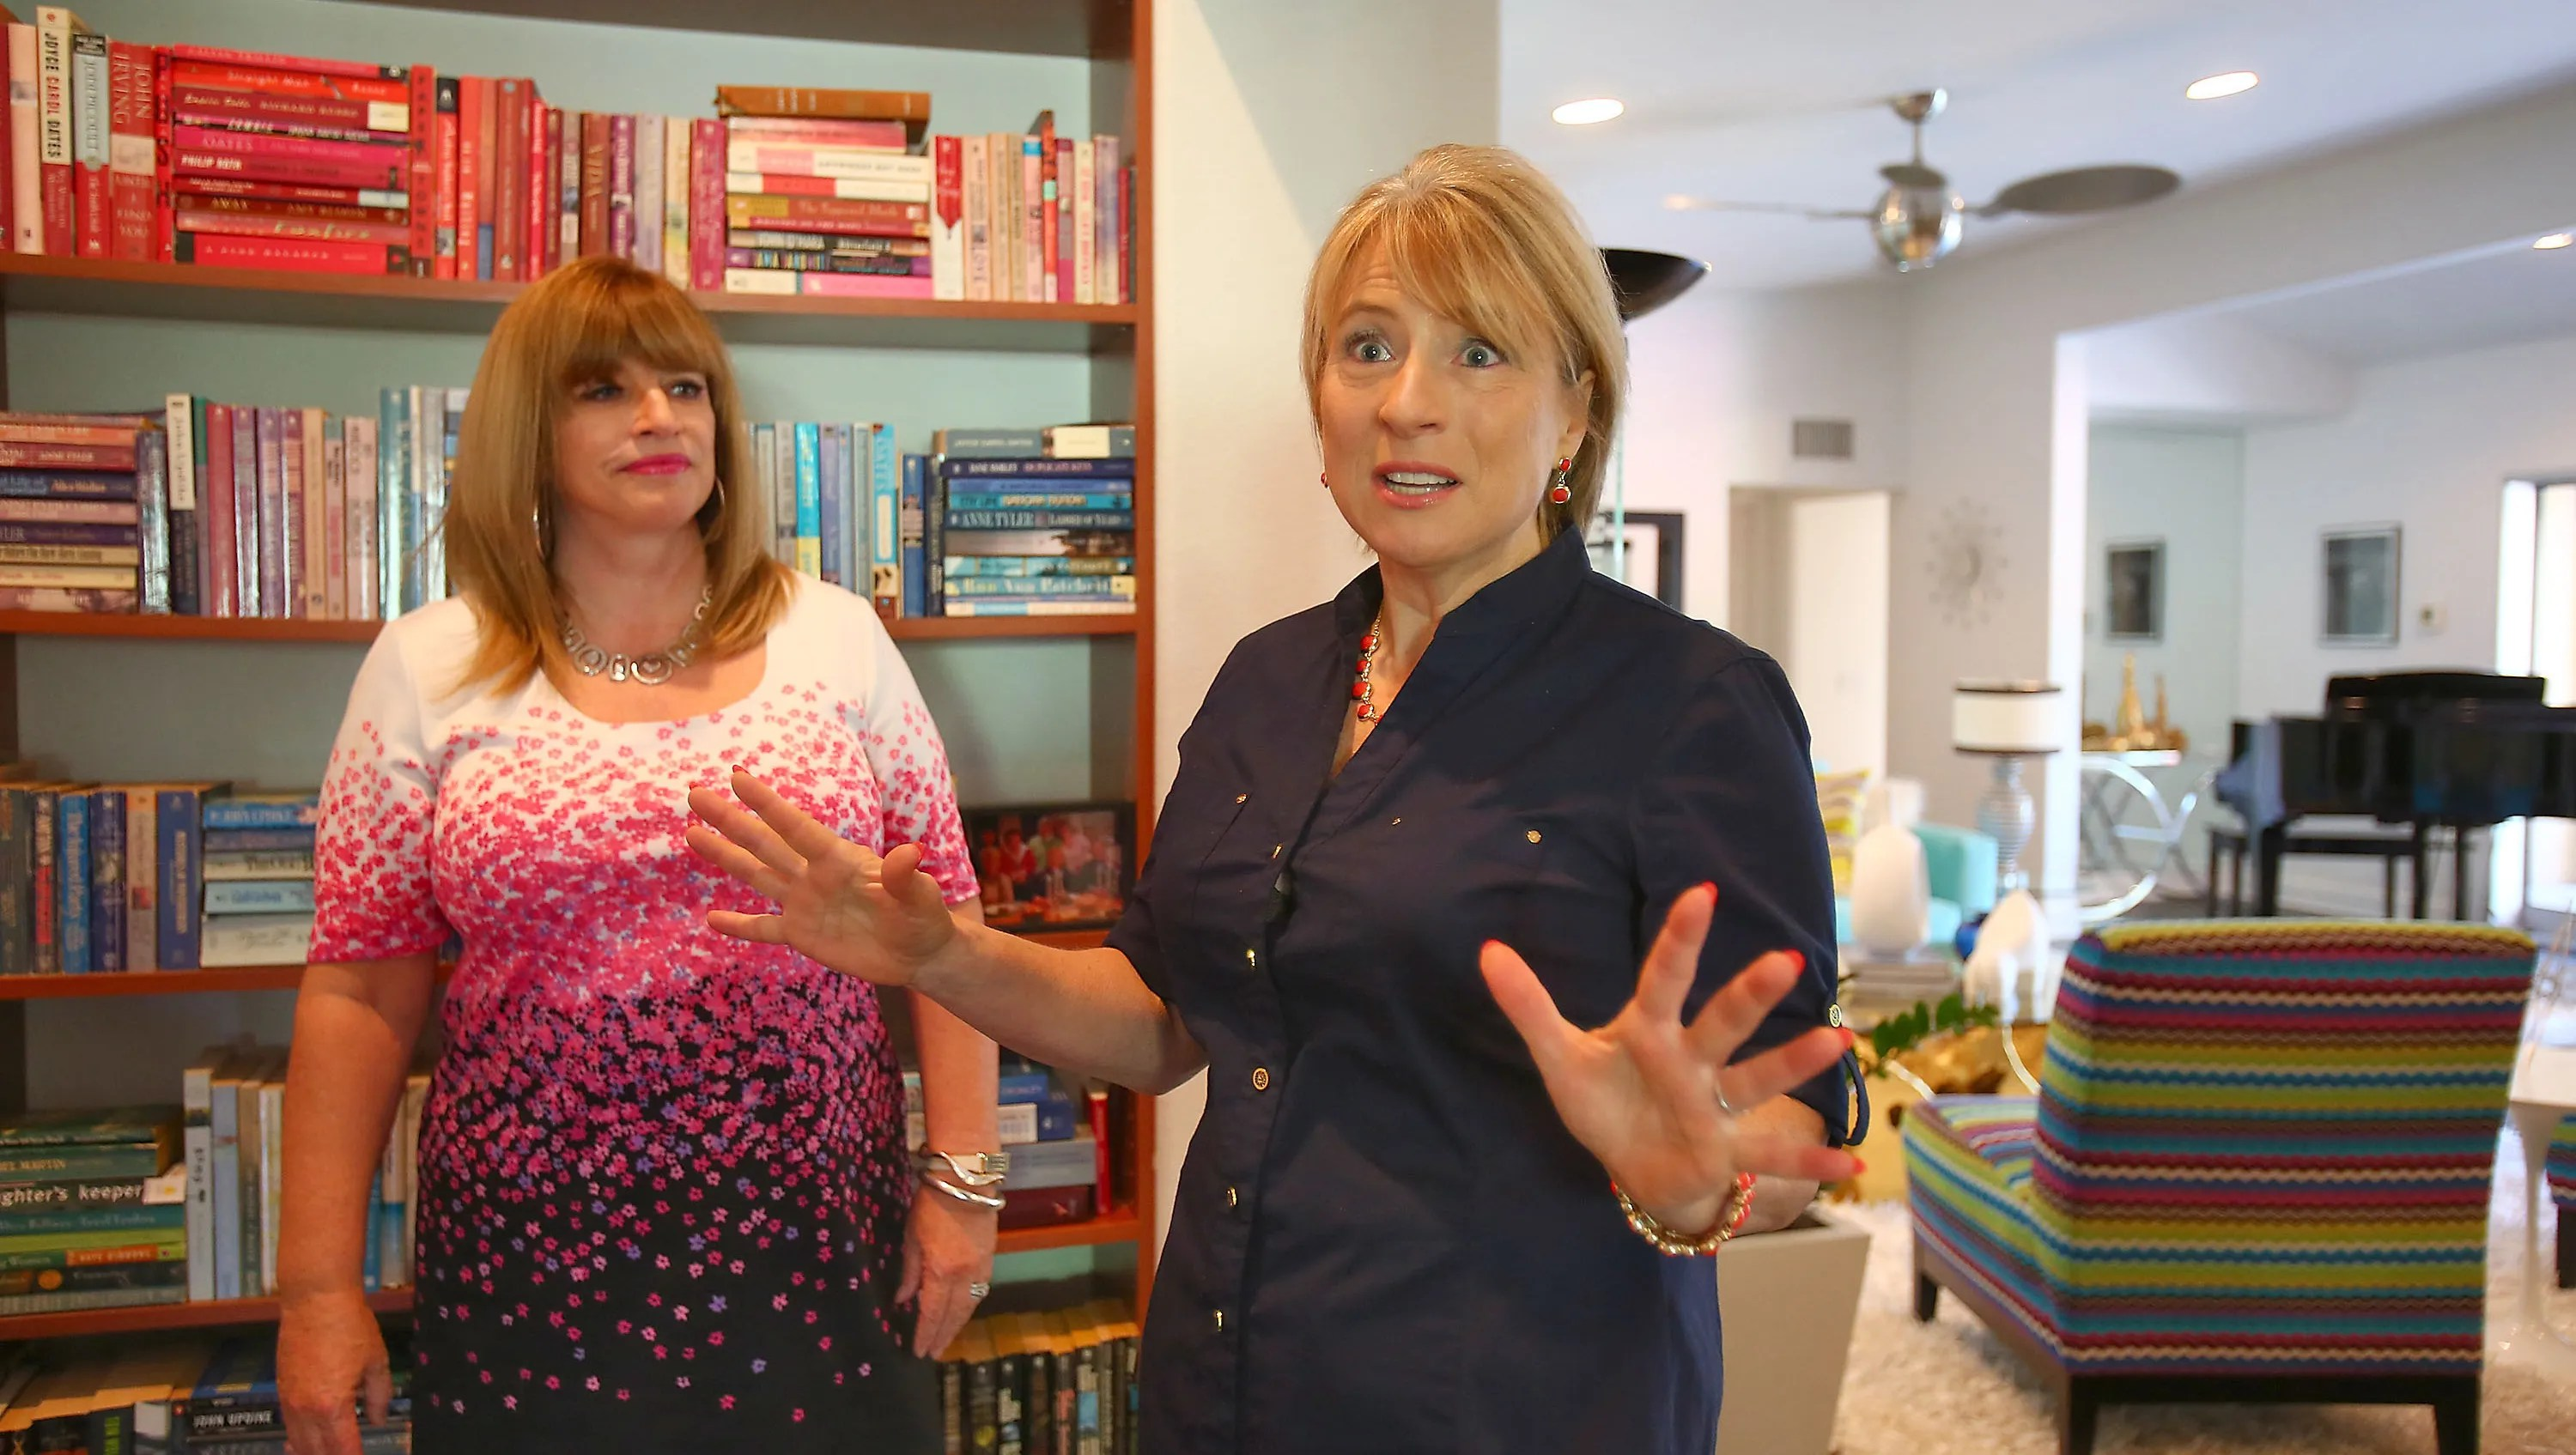 'hoarders' Star Helps Organize Palm Springs Client